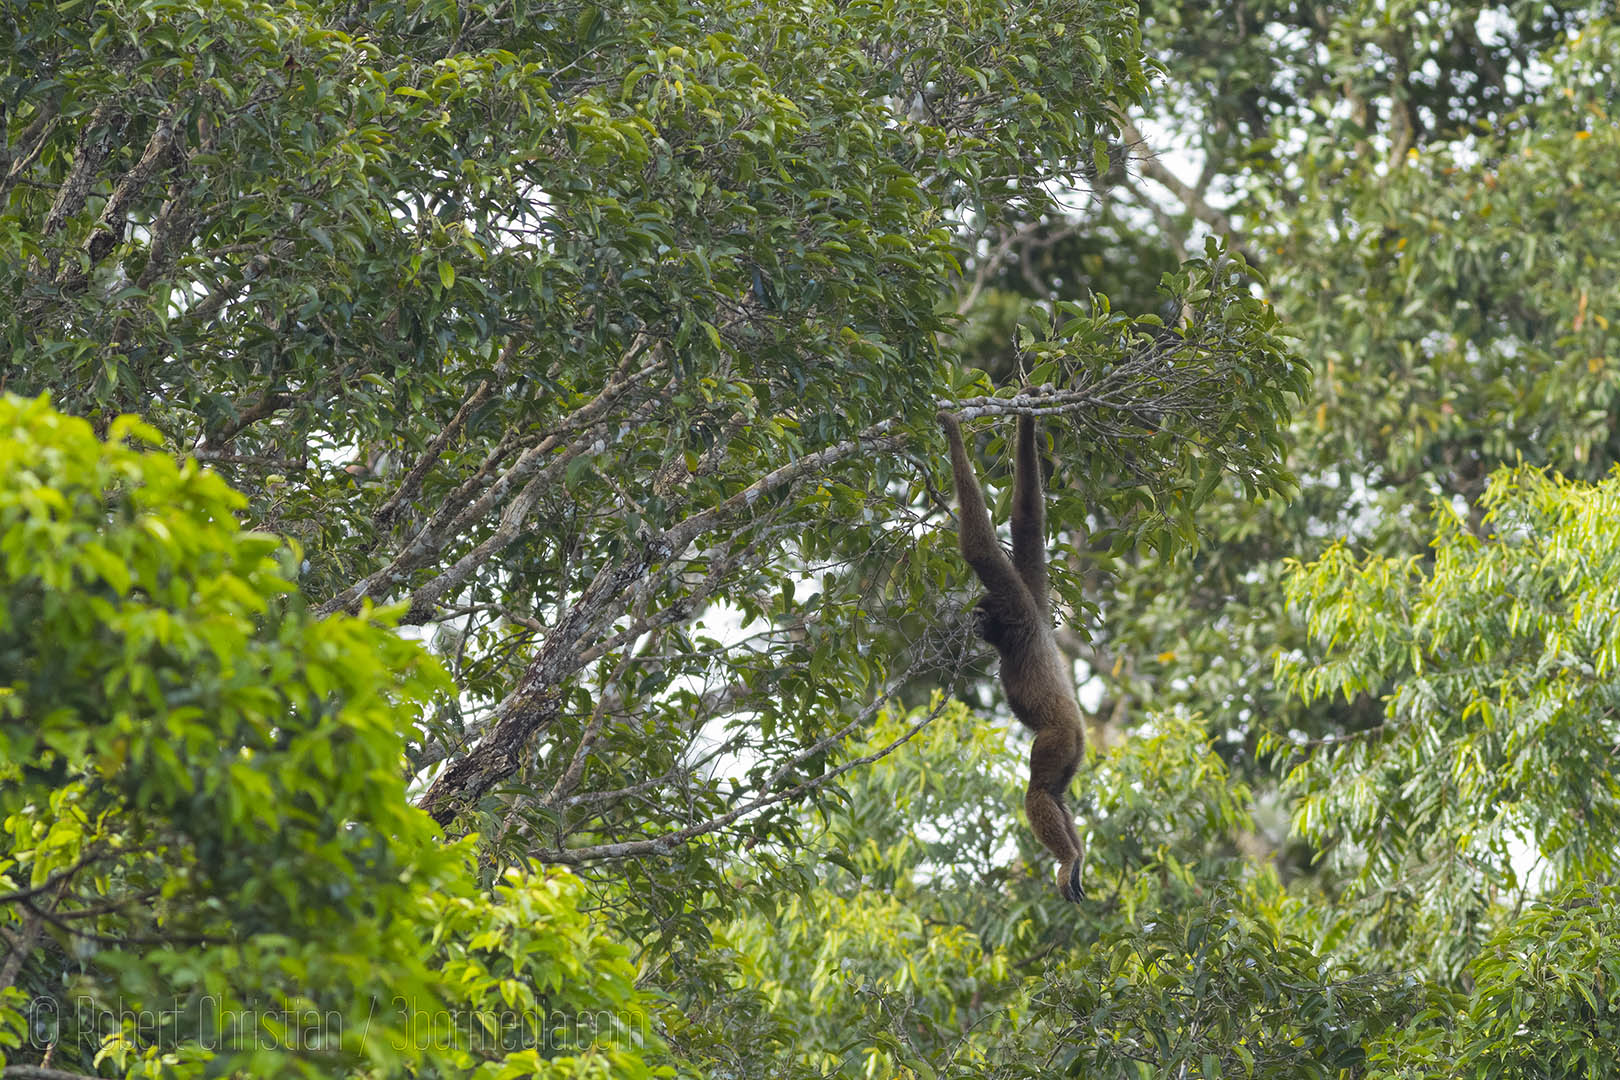 A gibbon hanging around in the canopy of Ulu Temburong.